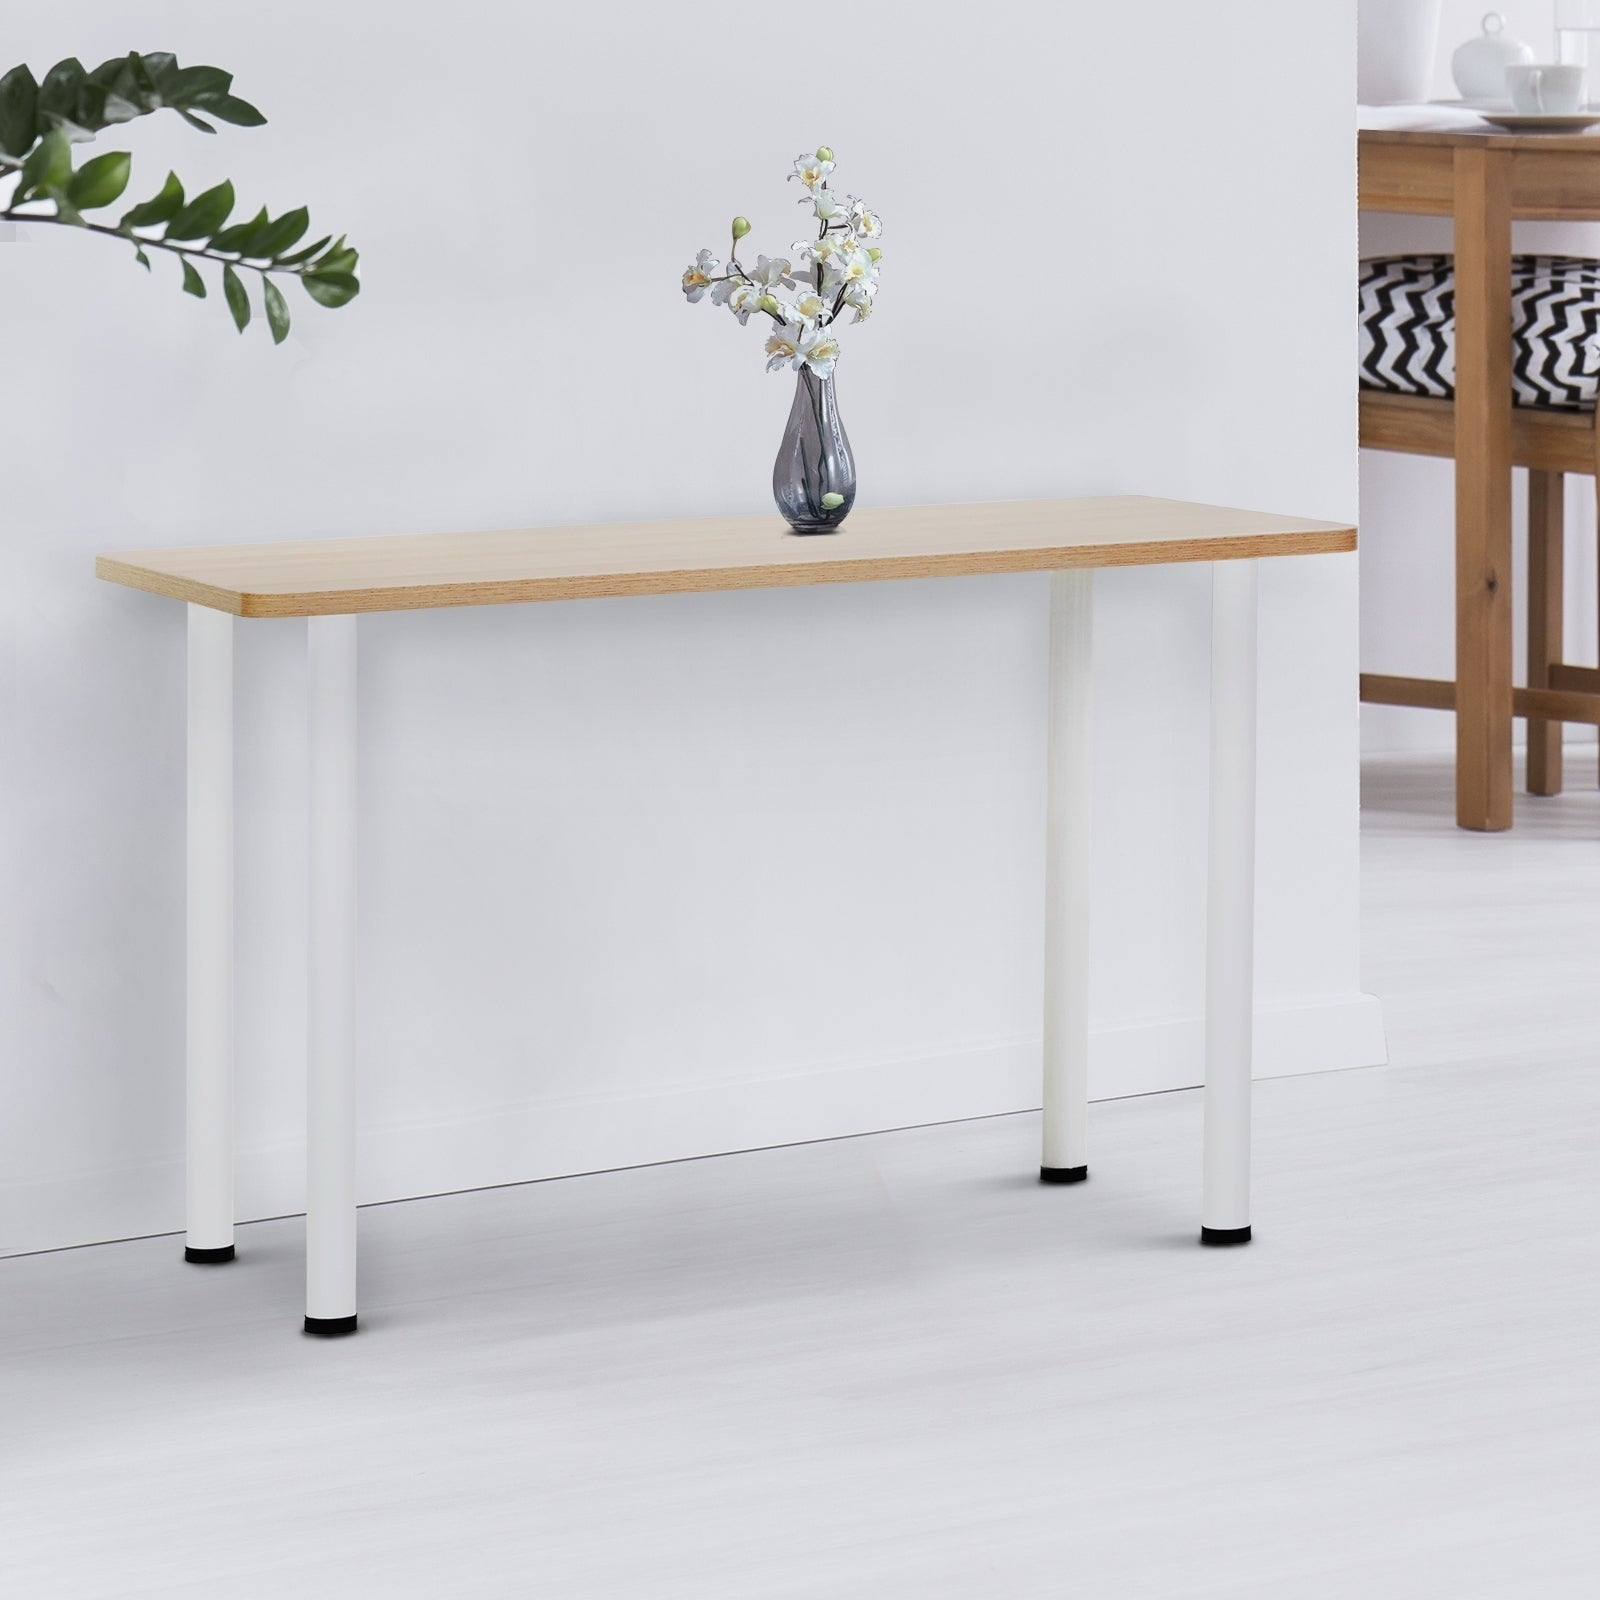 homcom Modern Dining Table Office Working Desk Wood Top with Stainless Steel Leg